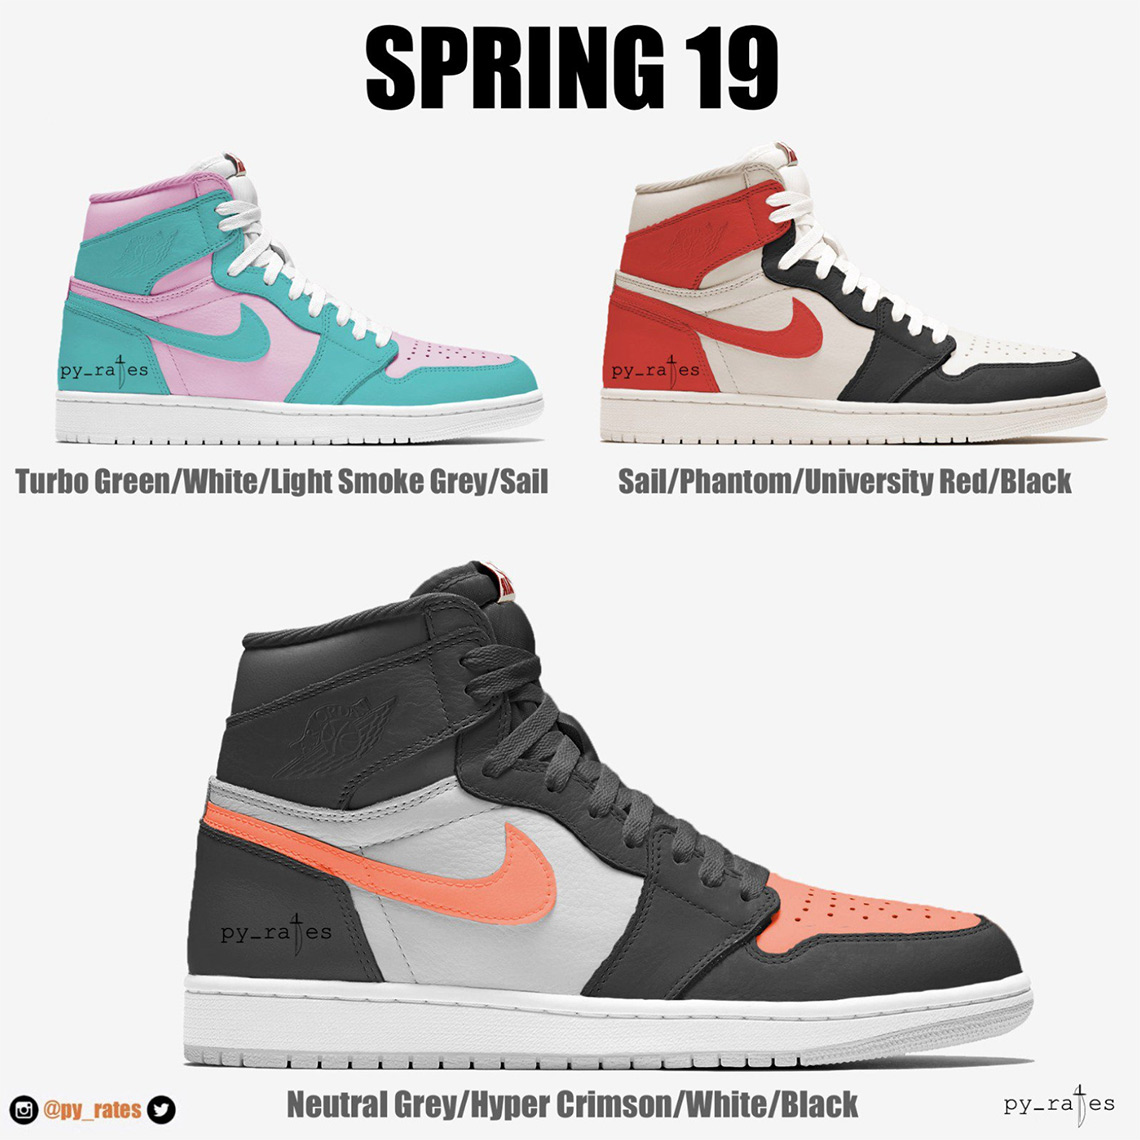 c72e00ba2d7 ... these upcoming Jordan 1s and stay tuned for release updates. In the  mean time